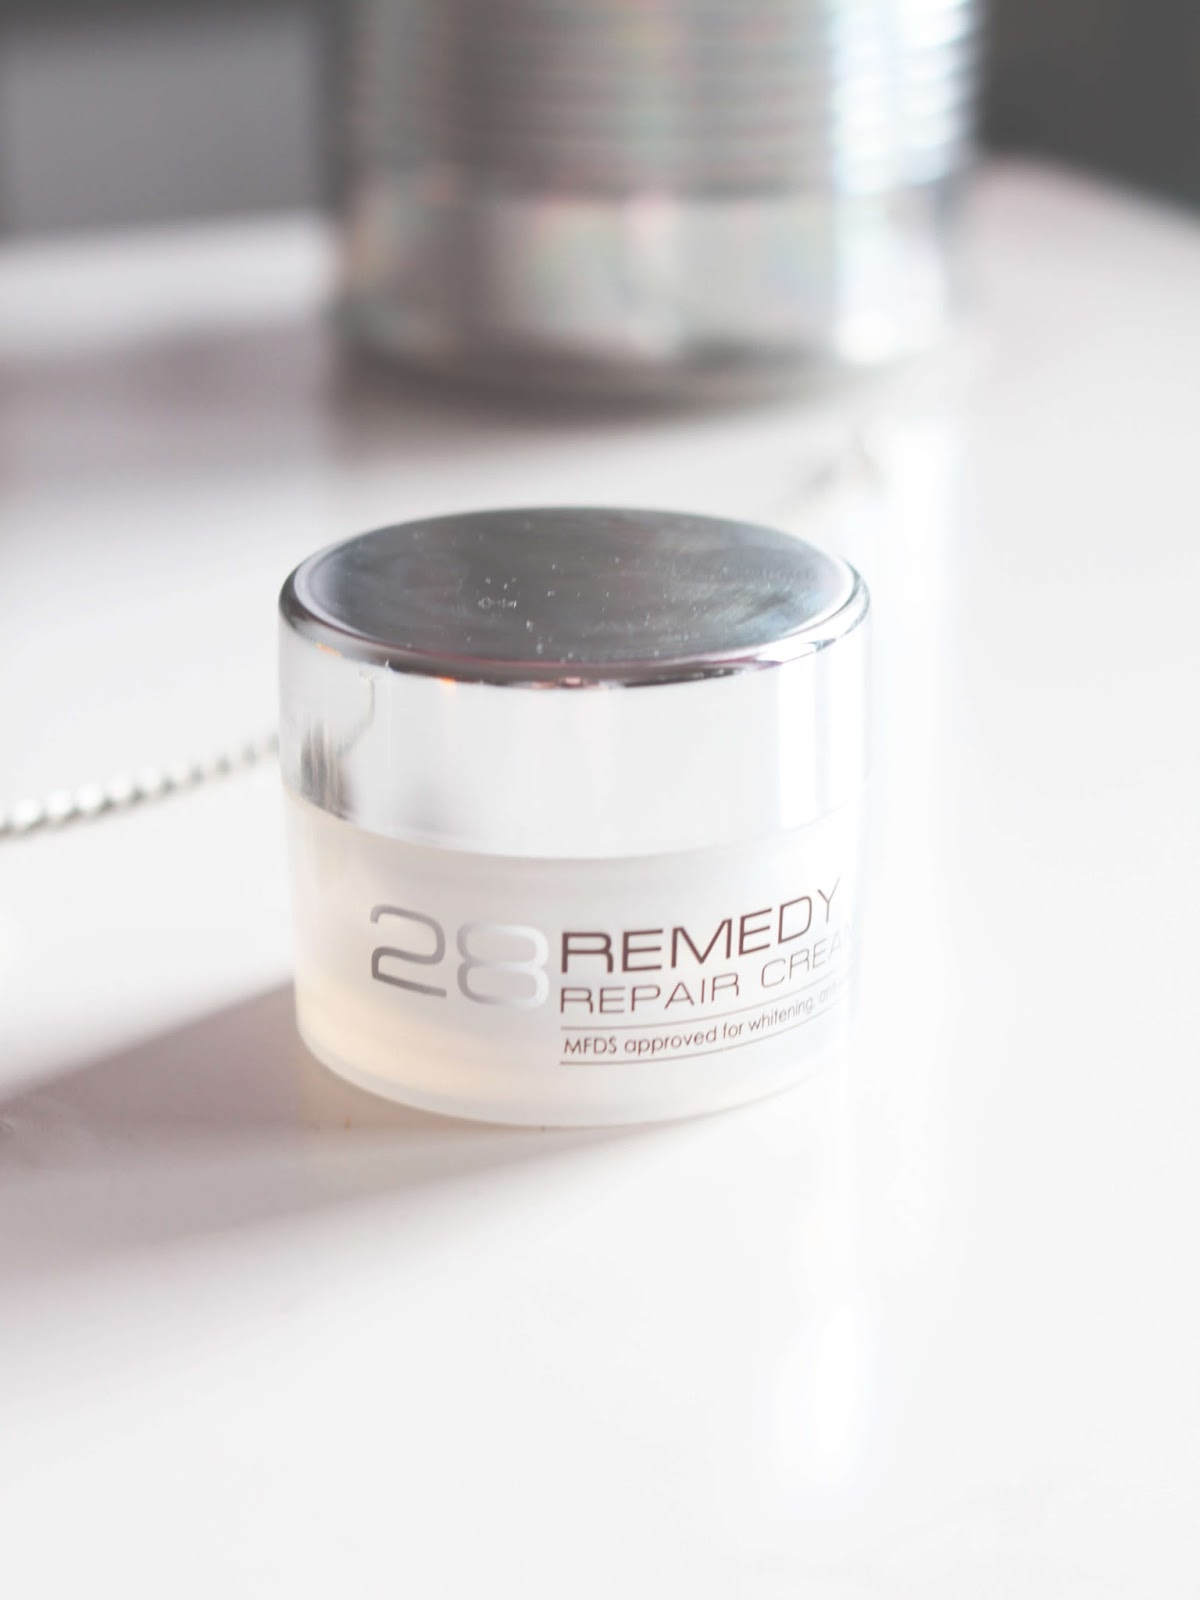 NoTS 28 Remedy Repair Cream review